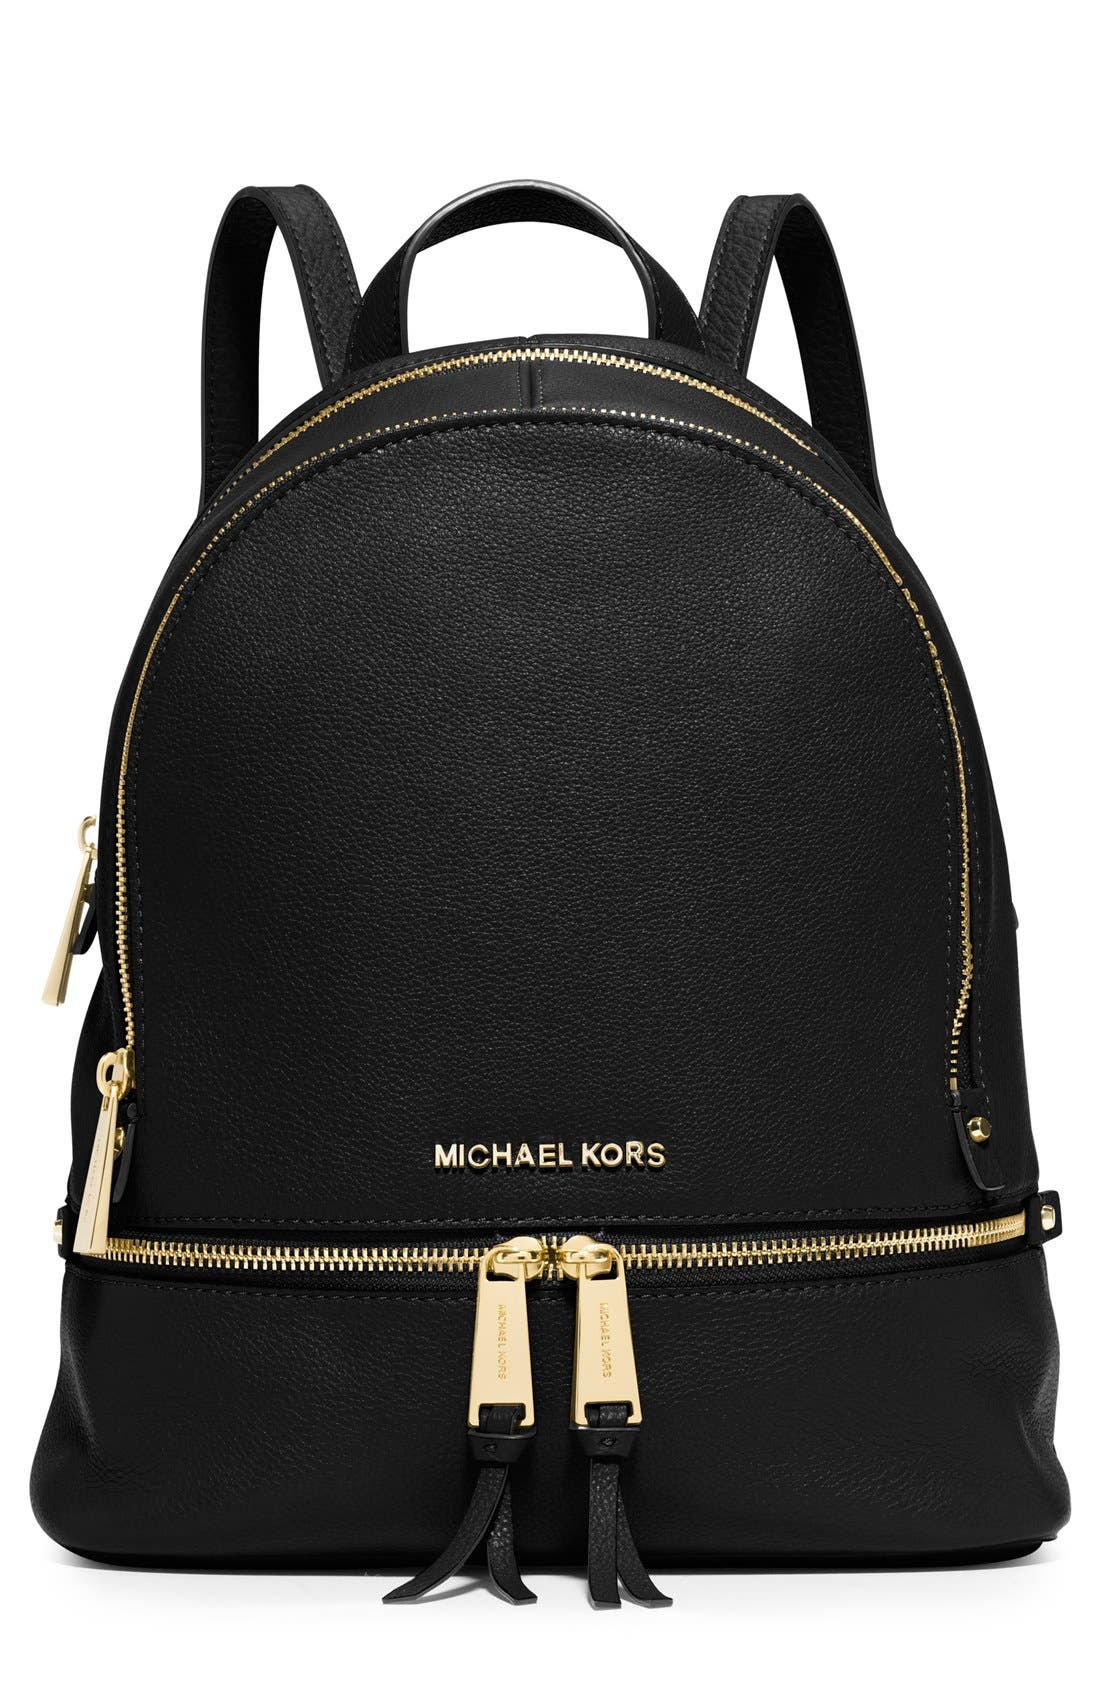 5a563a556 Buy michael kors fulton backpack yellow > OFF32% Discounted